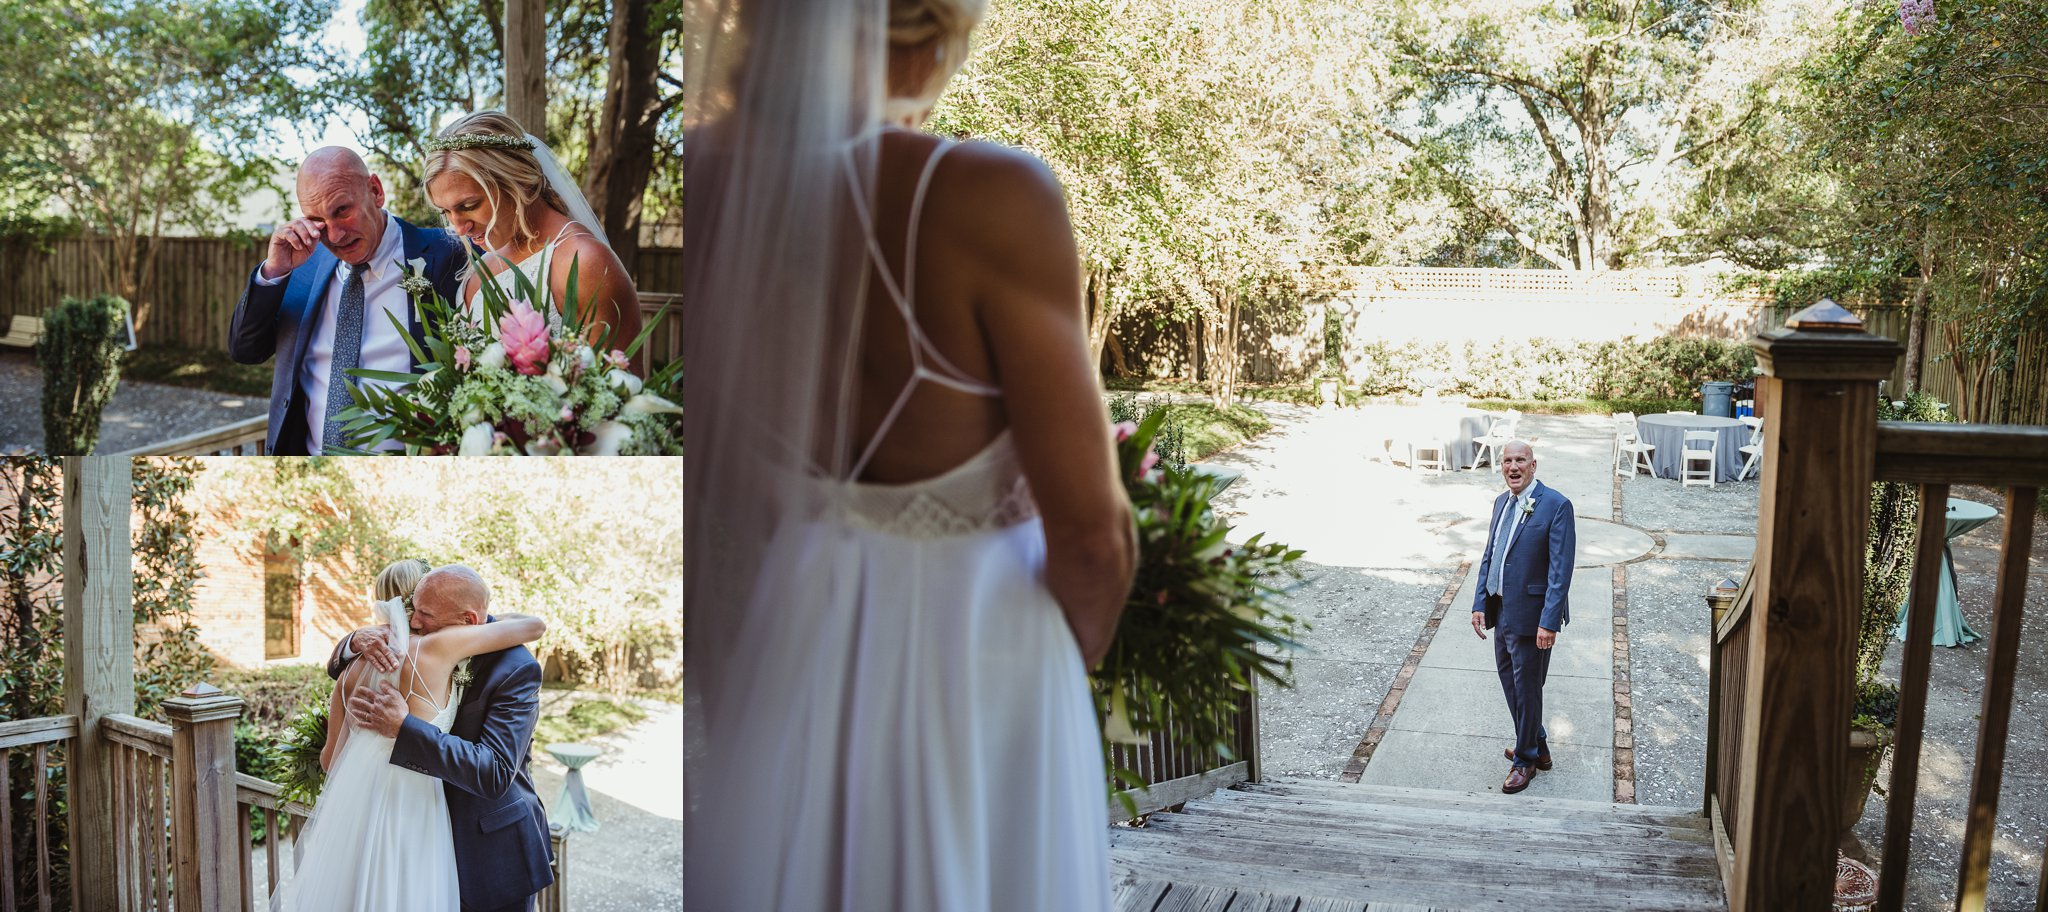 The bride has a first look with her father before her wedding in Wilmington, NC, photos by Rose Trail Images.